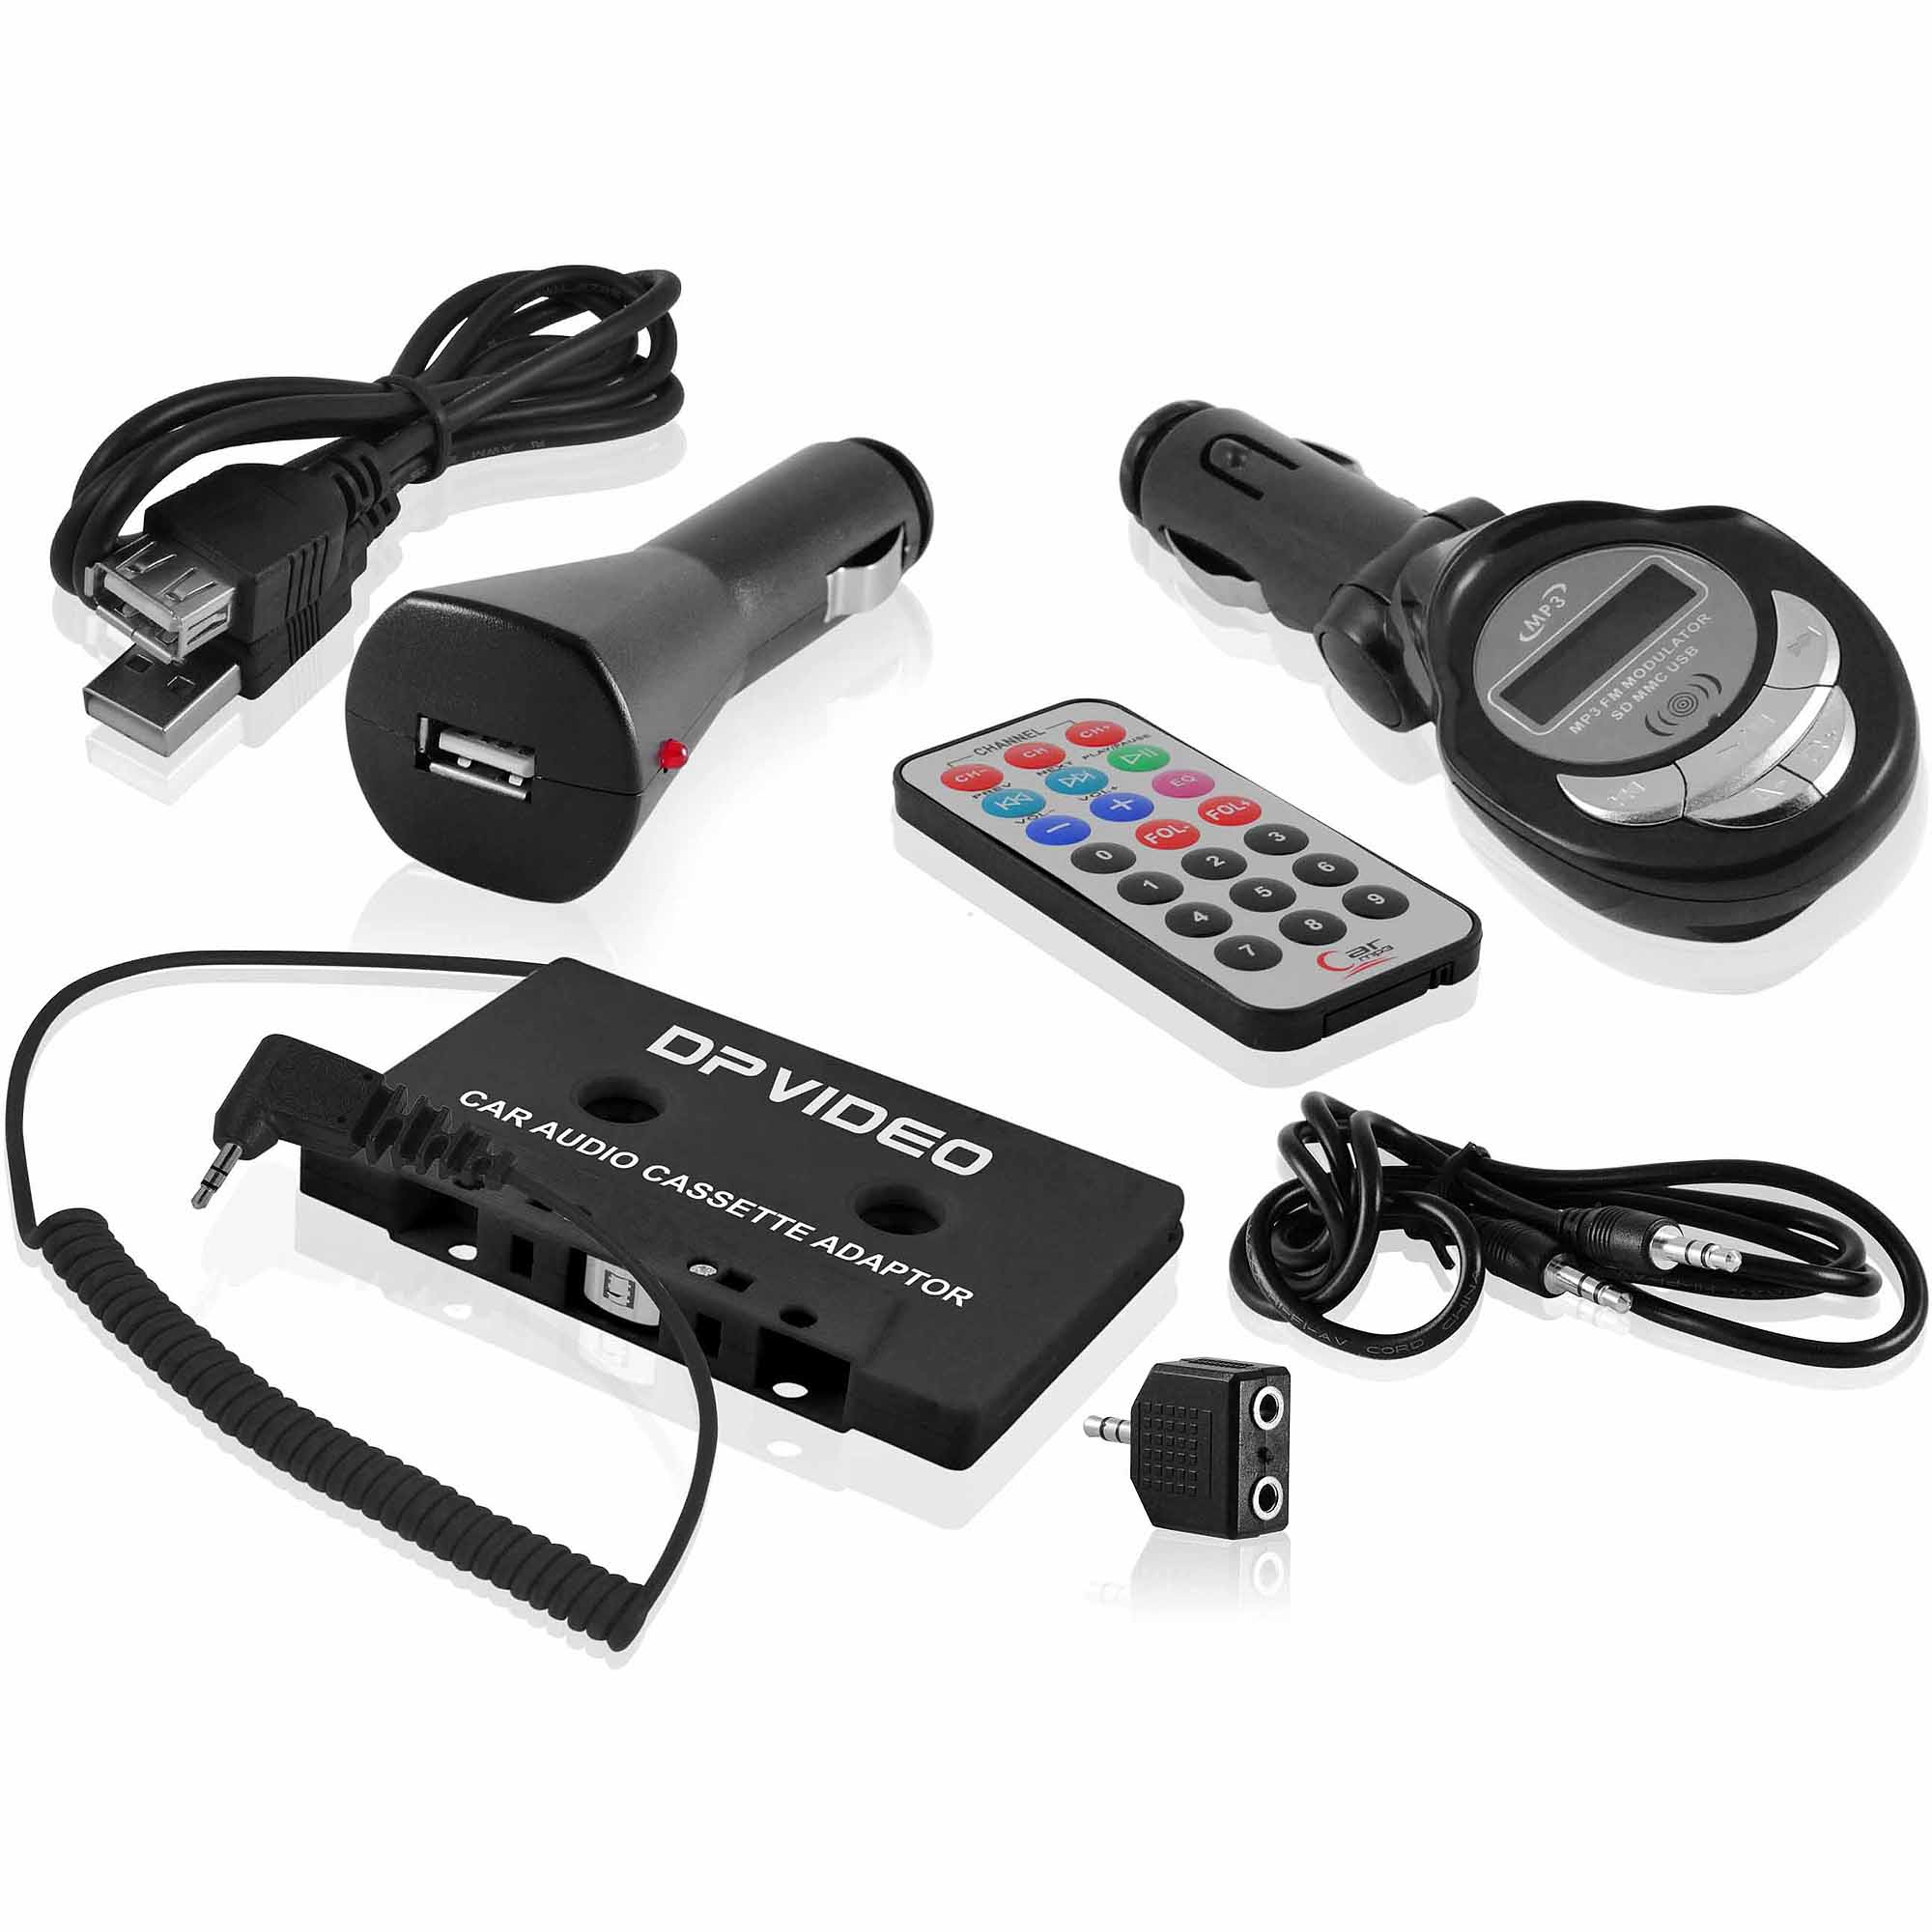 DP Audio Universal 6-in-1 Mobile Accessory Kit with Car Charger and FM Transmitter